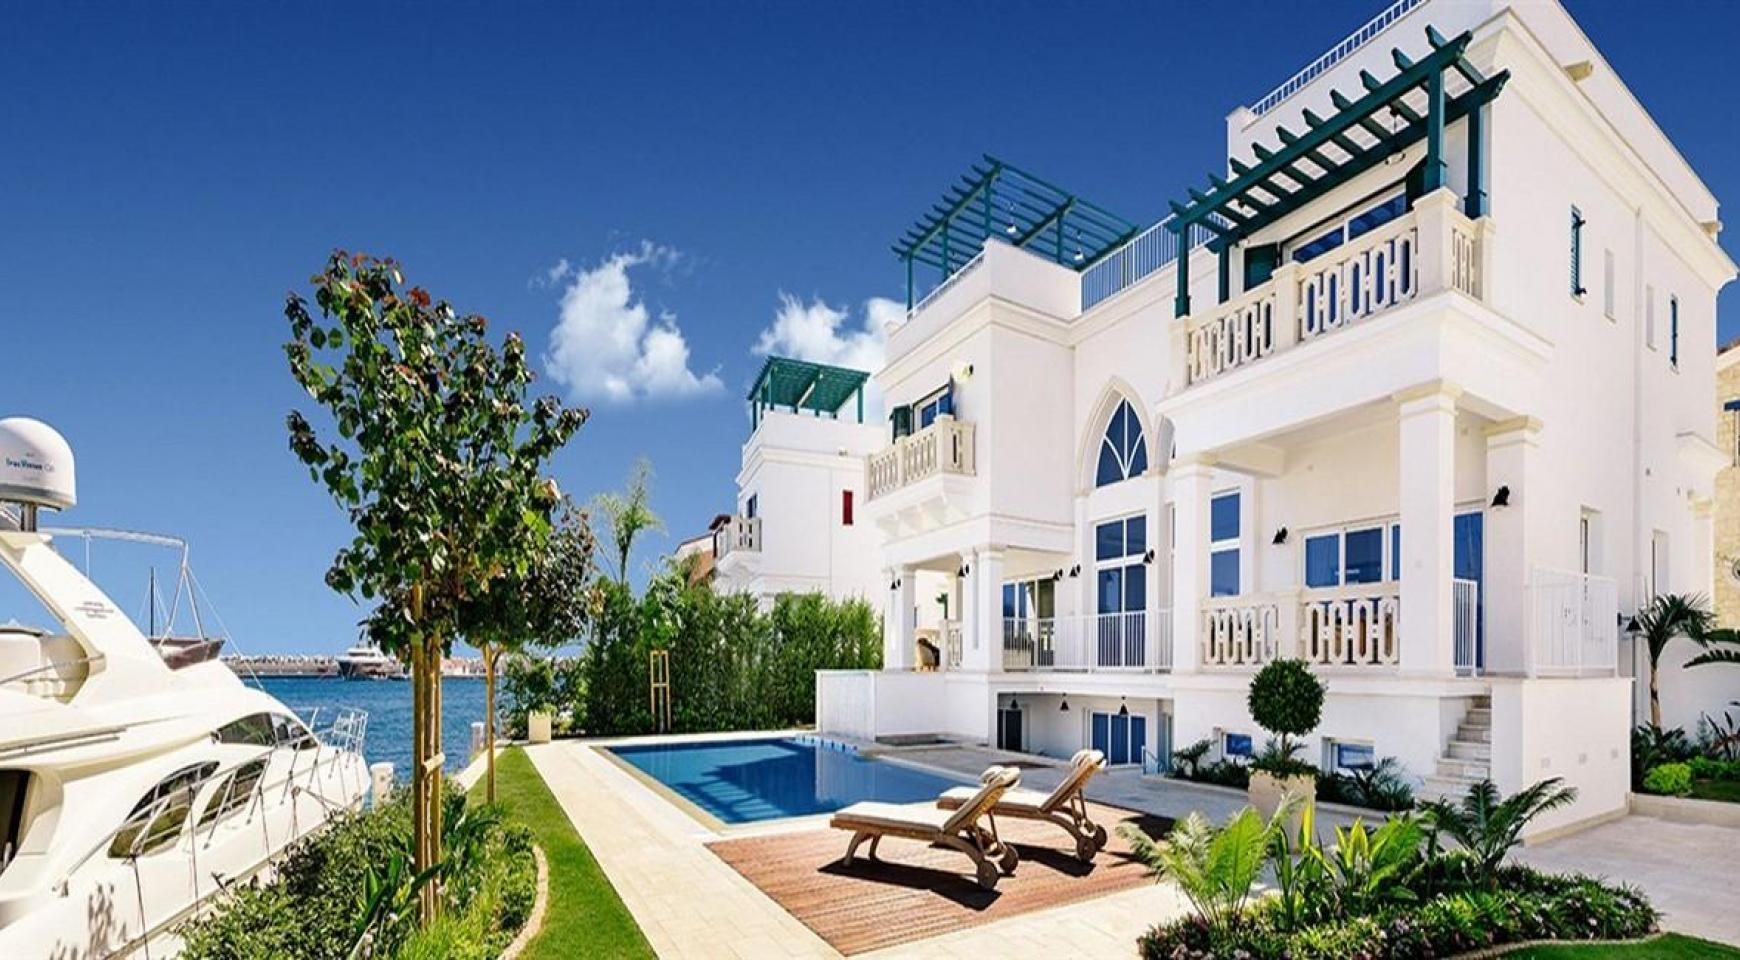 Elite 3 Bedroom Villa within an Exclusive Development by the Sea - 1